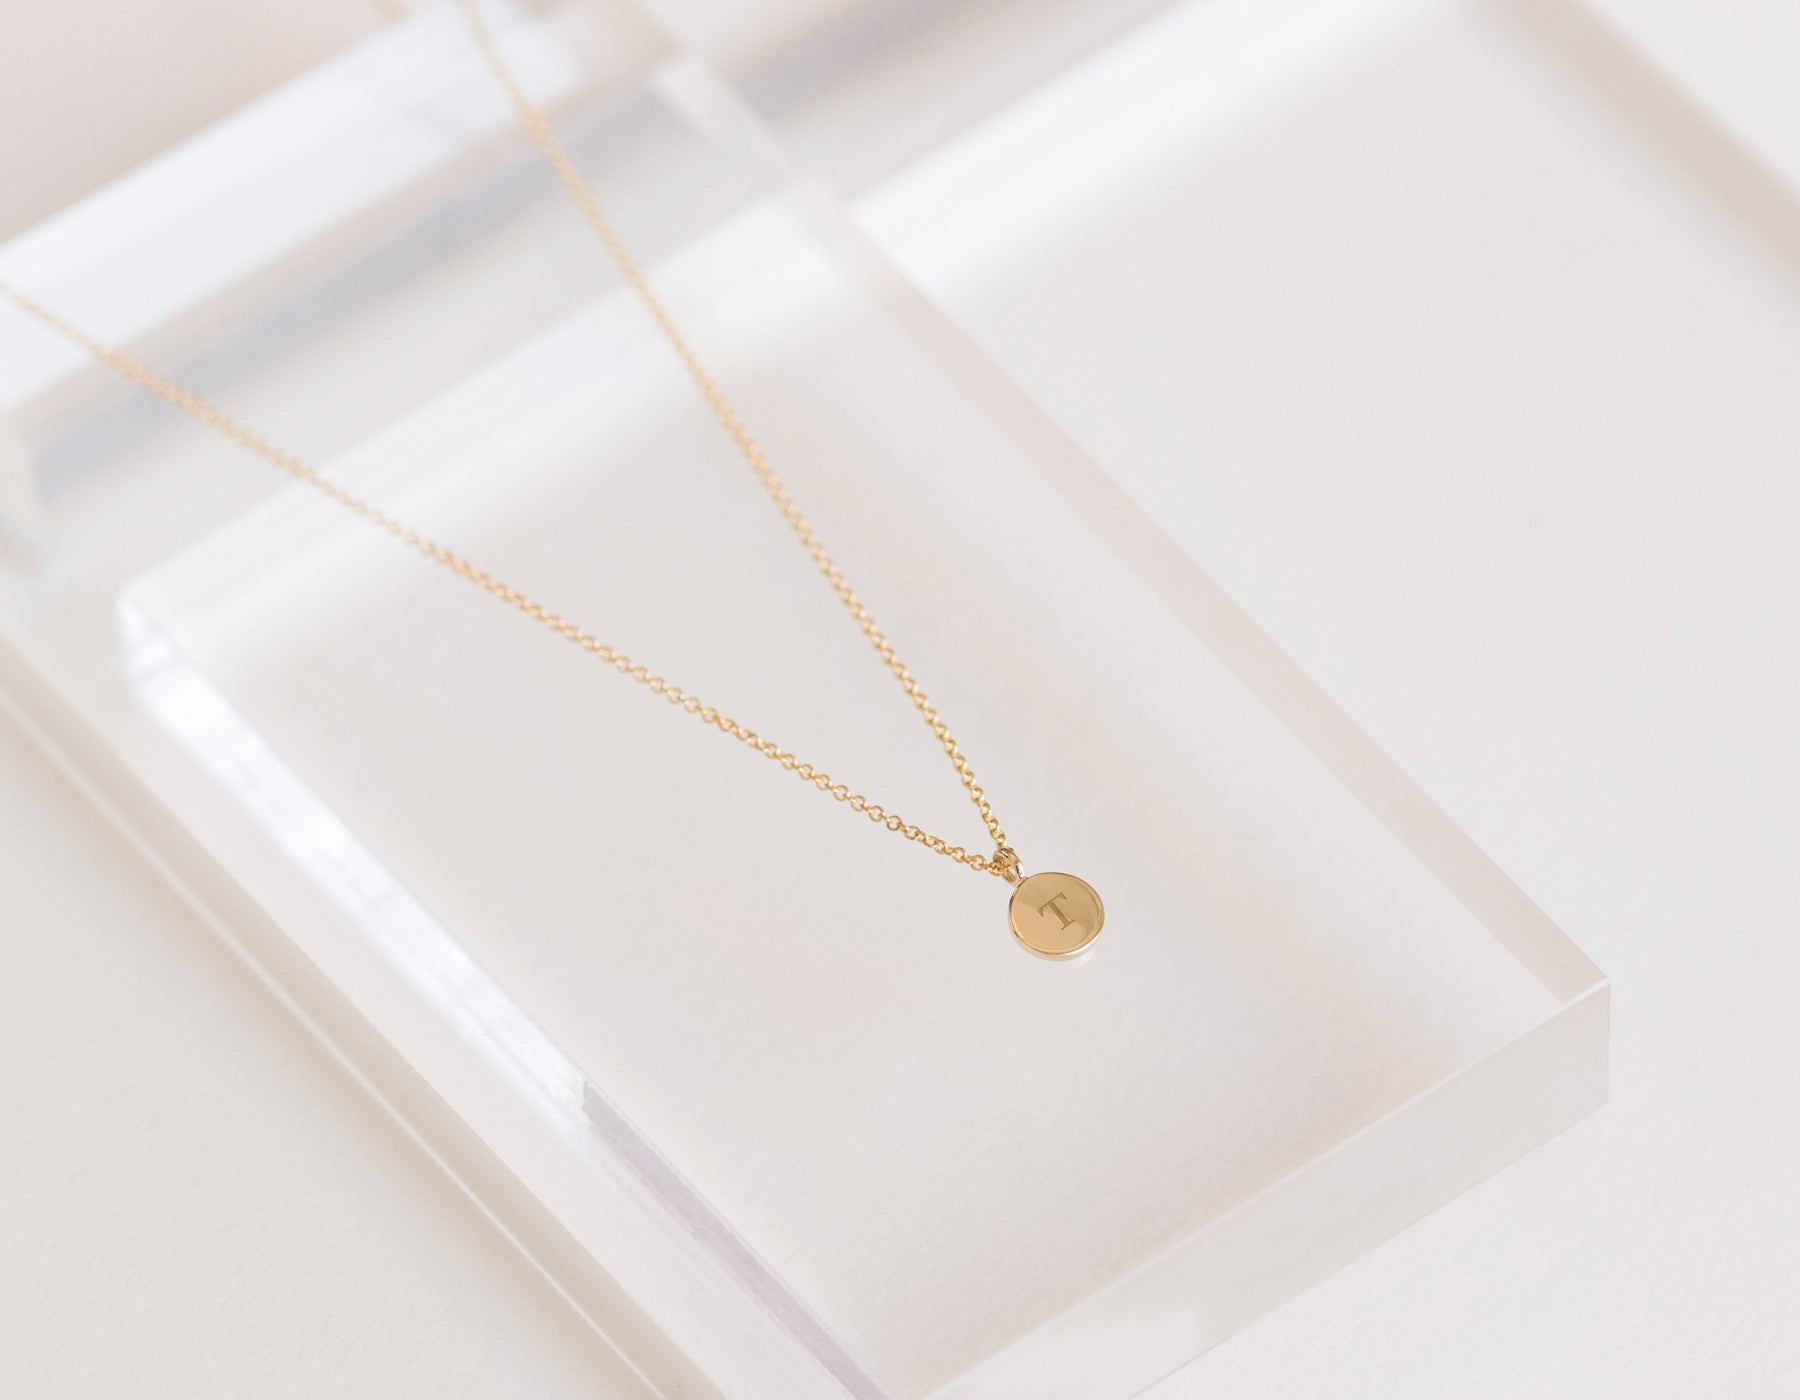 Initial necklace 14k solid gold vrai oro customized engraving on small disk initial necklace 14k yellow gold vrai and oro minimalist jewelry circle aloadofball Image collections